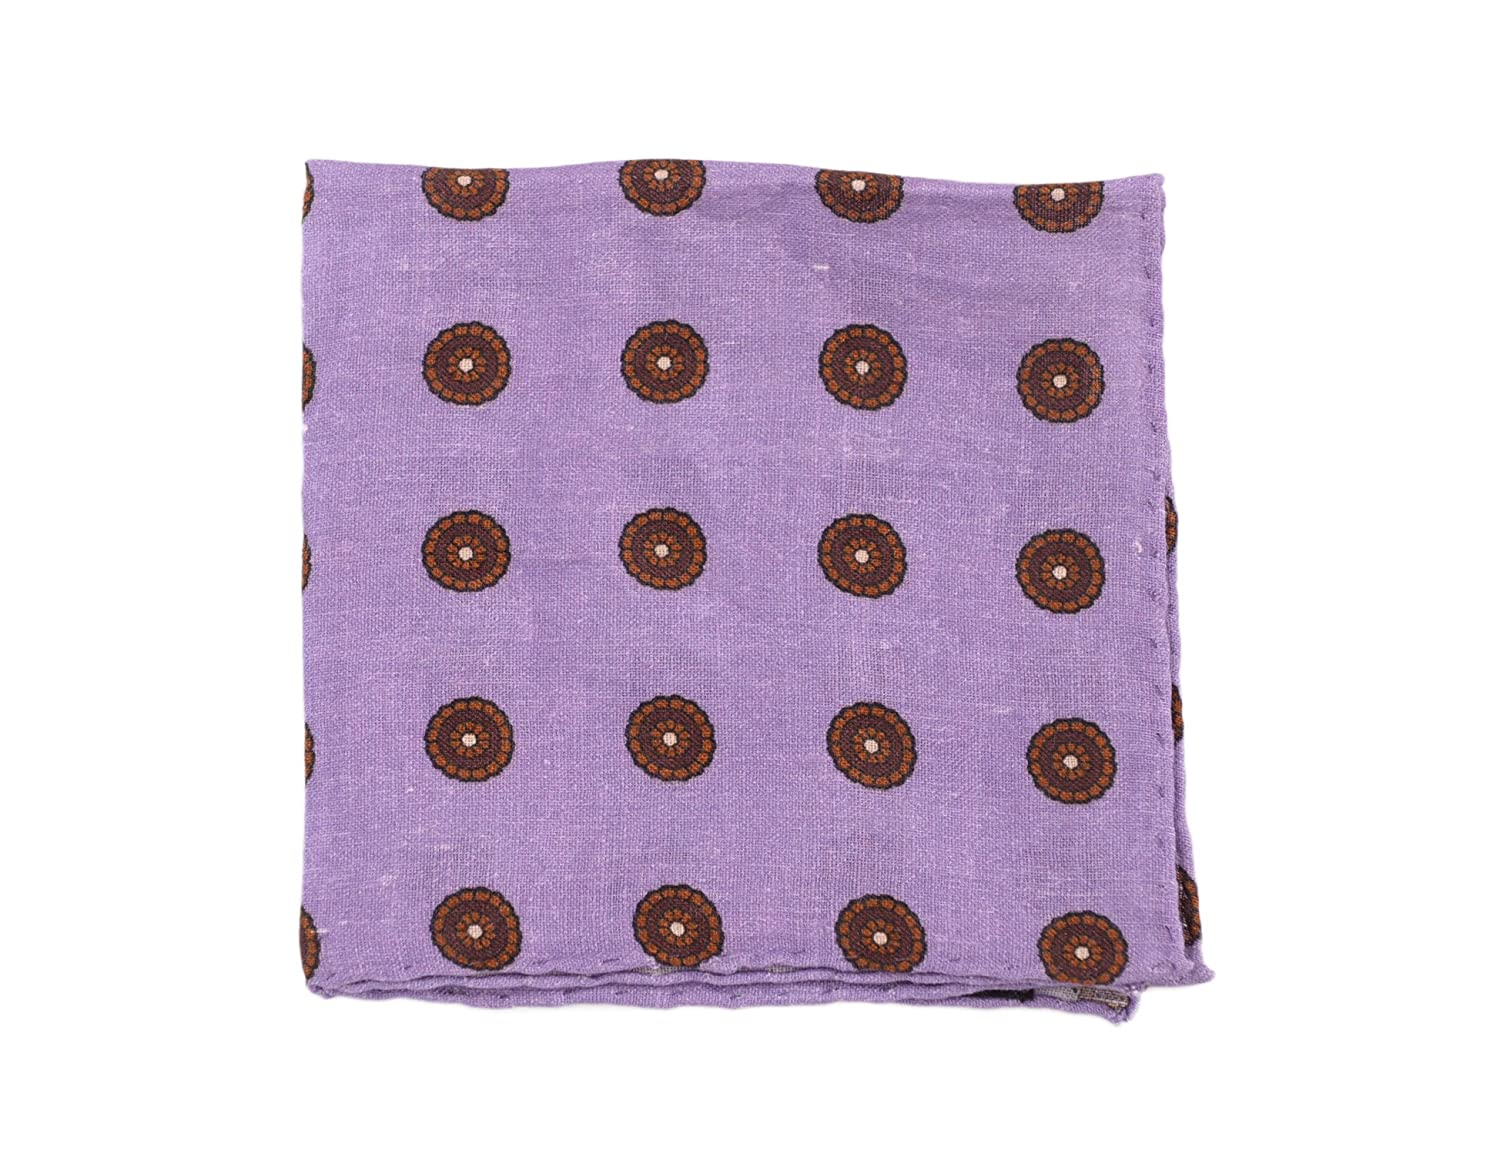 Cesare Attolini Purple Brown Circle Motif Linen Pocket Square Handmade In Italy